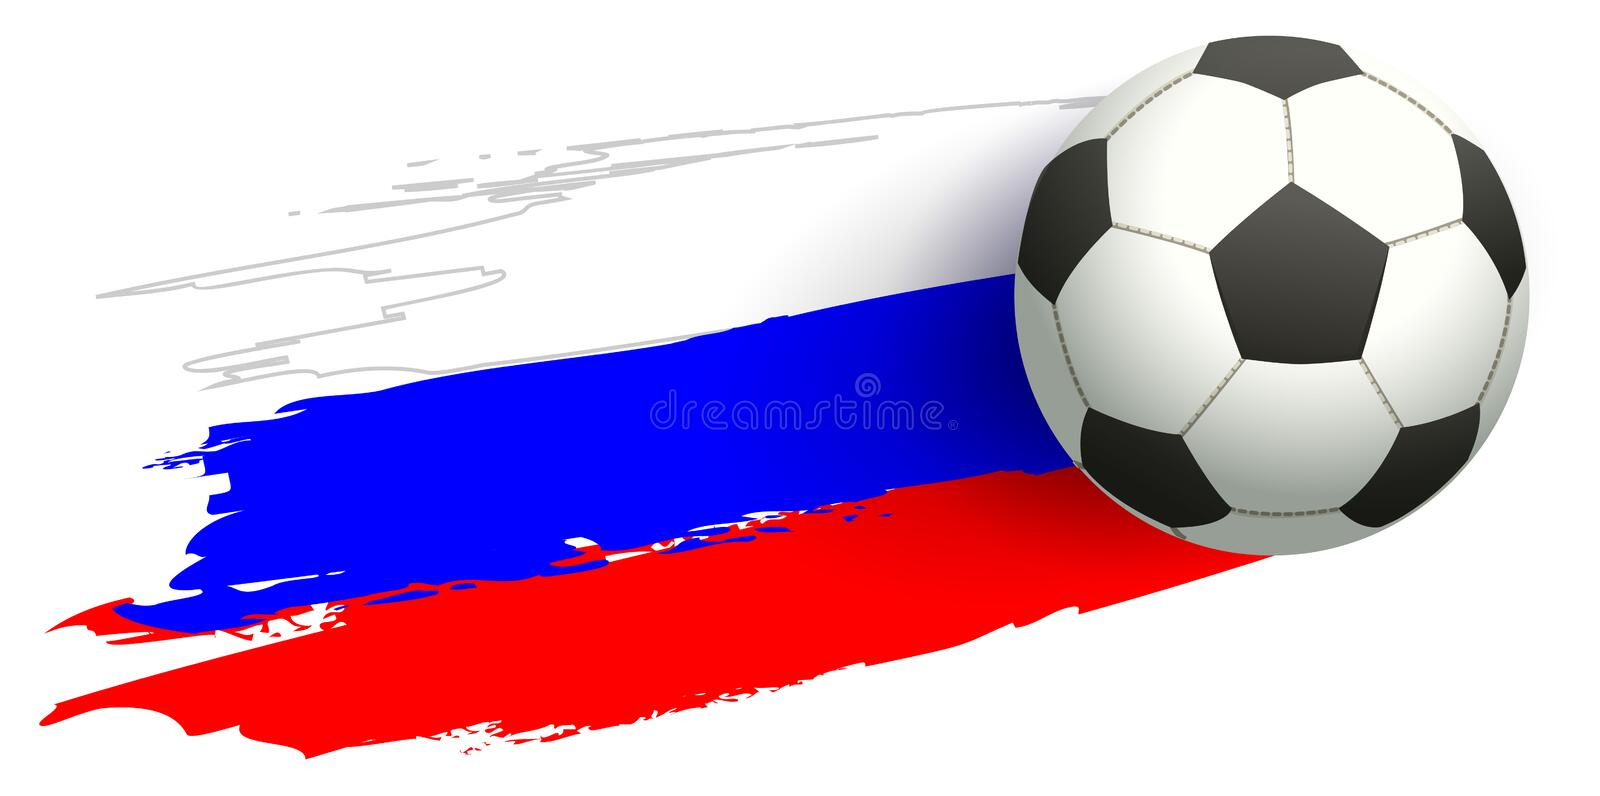 Championnat 2018 du football de la Russie Vol et drapeau Russie de ballon de football illustration libre de droits